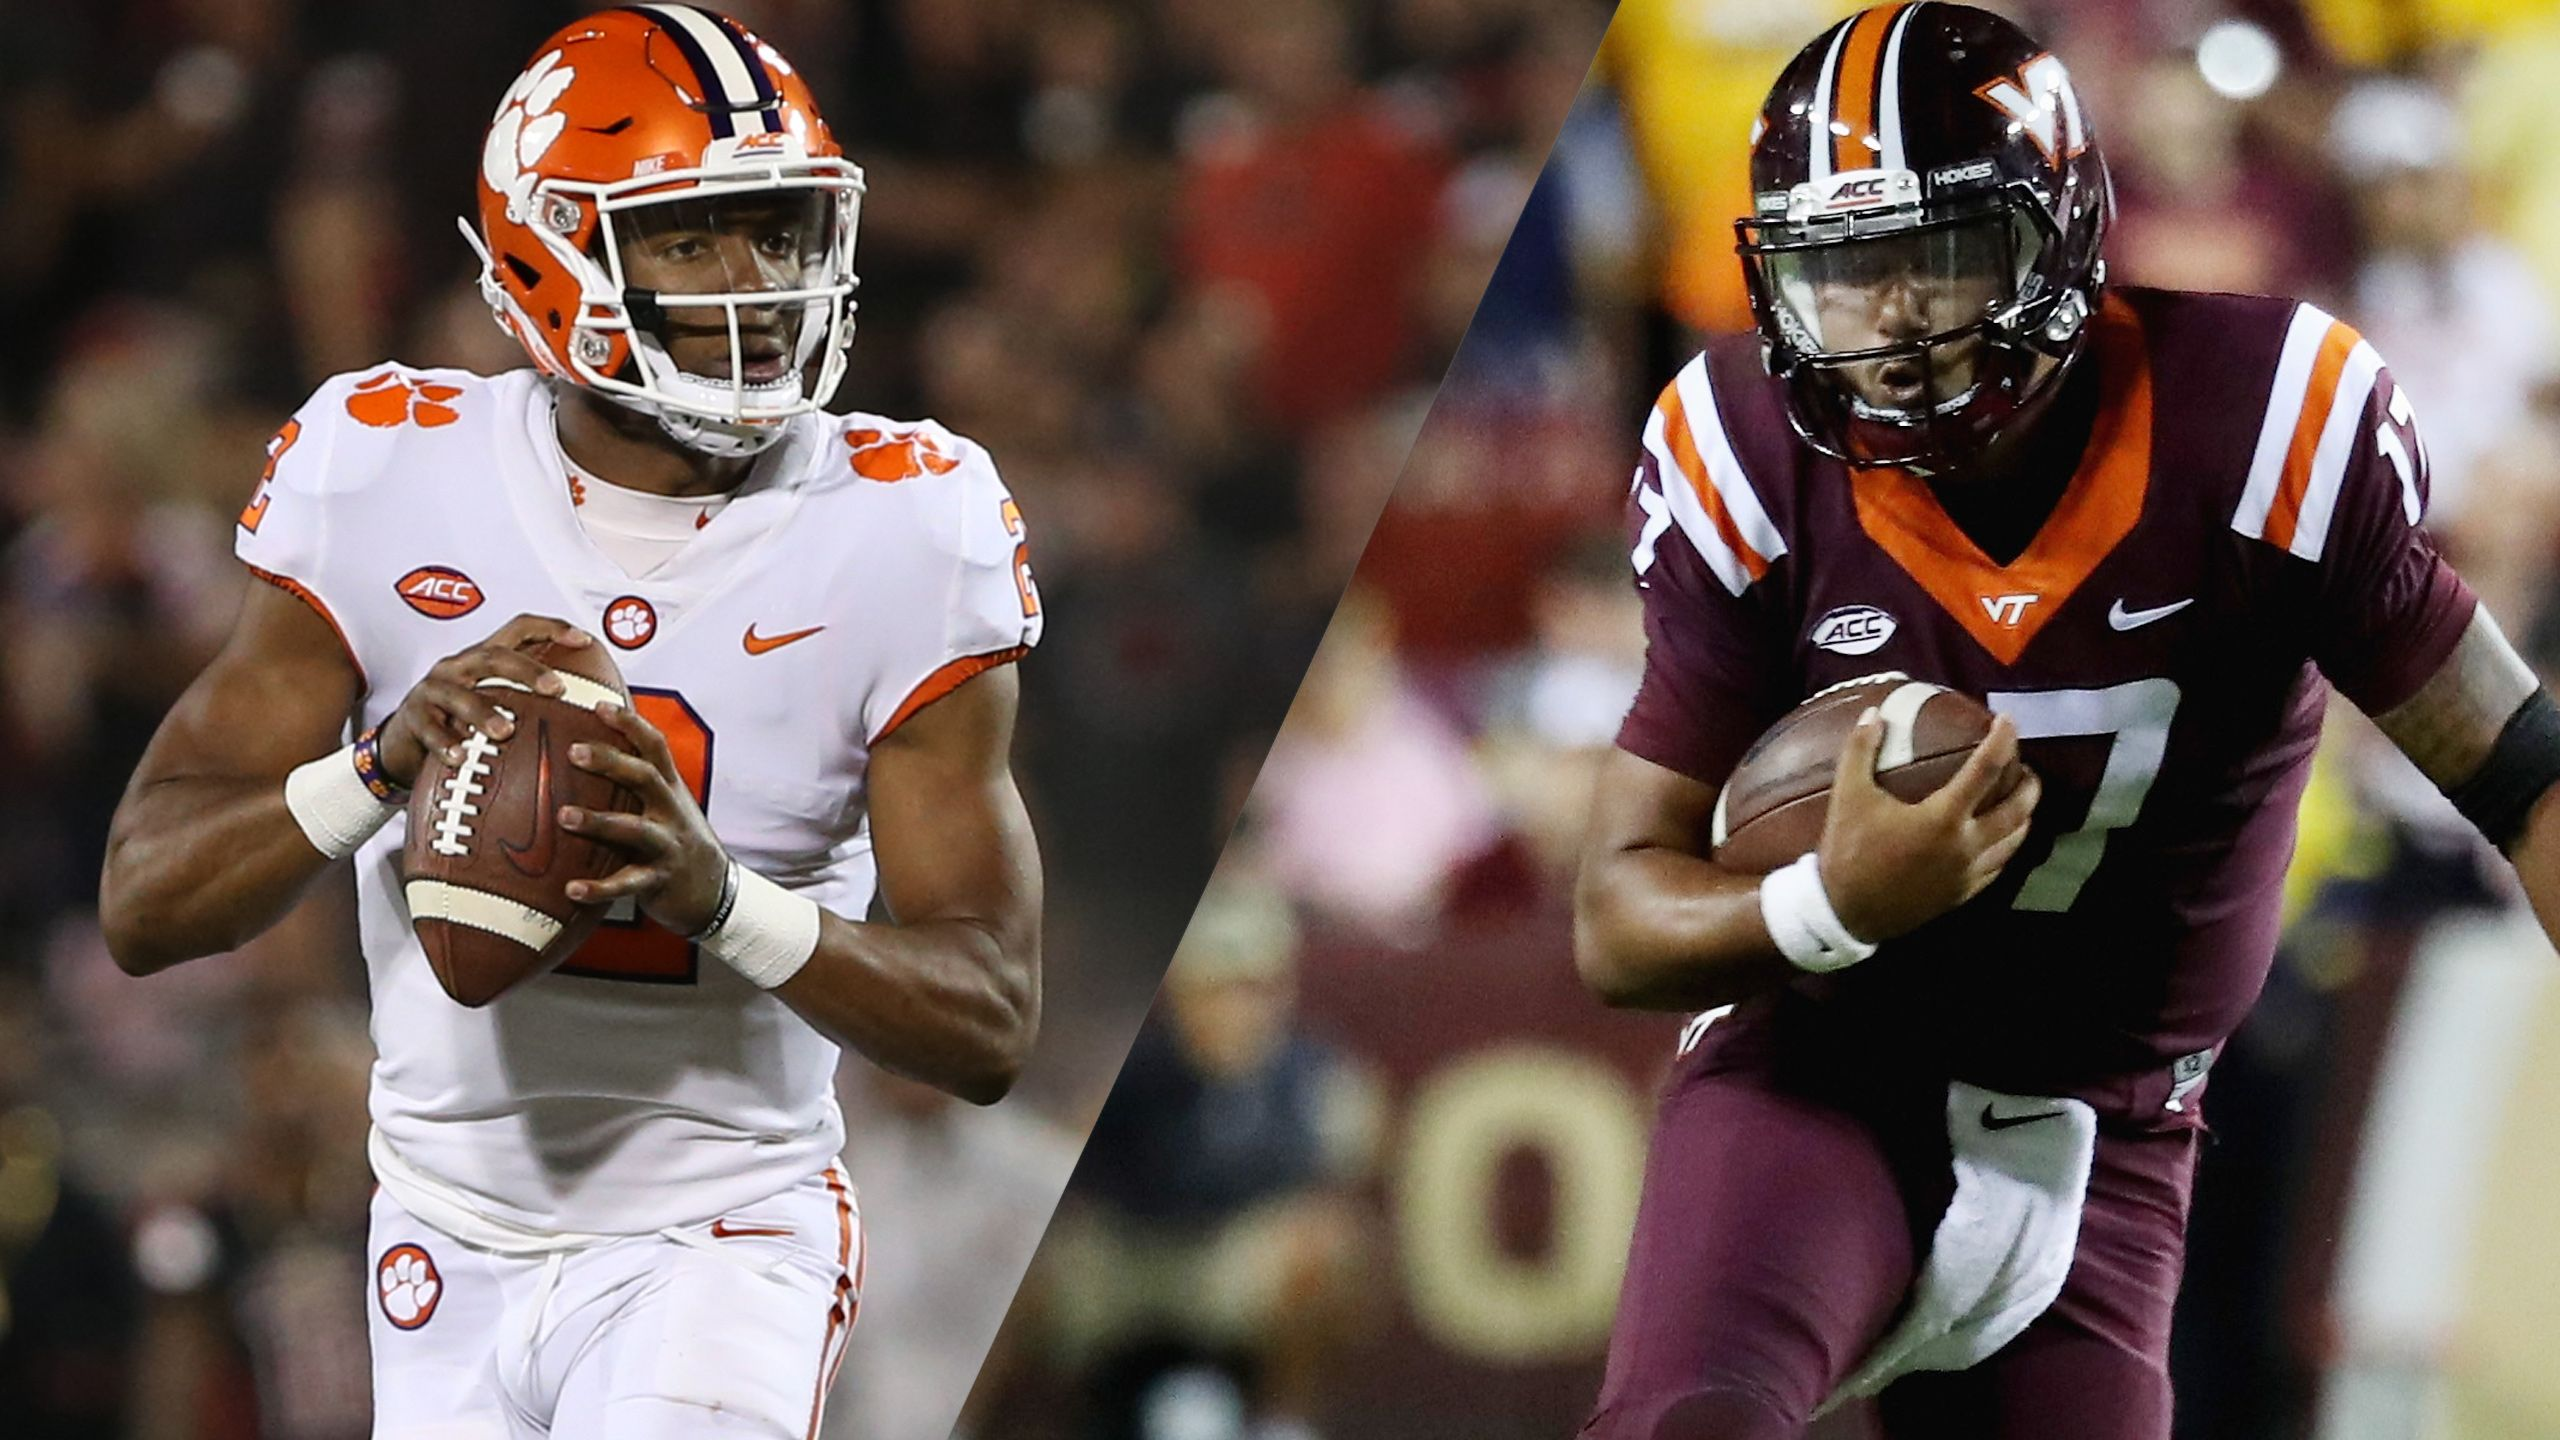 #2 Clemson vs. #12 Virginia Tech (Football)